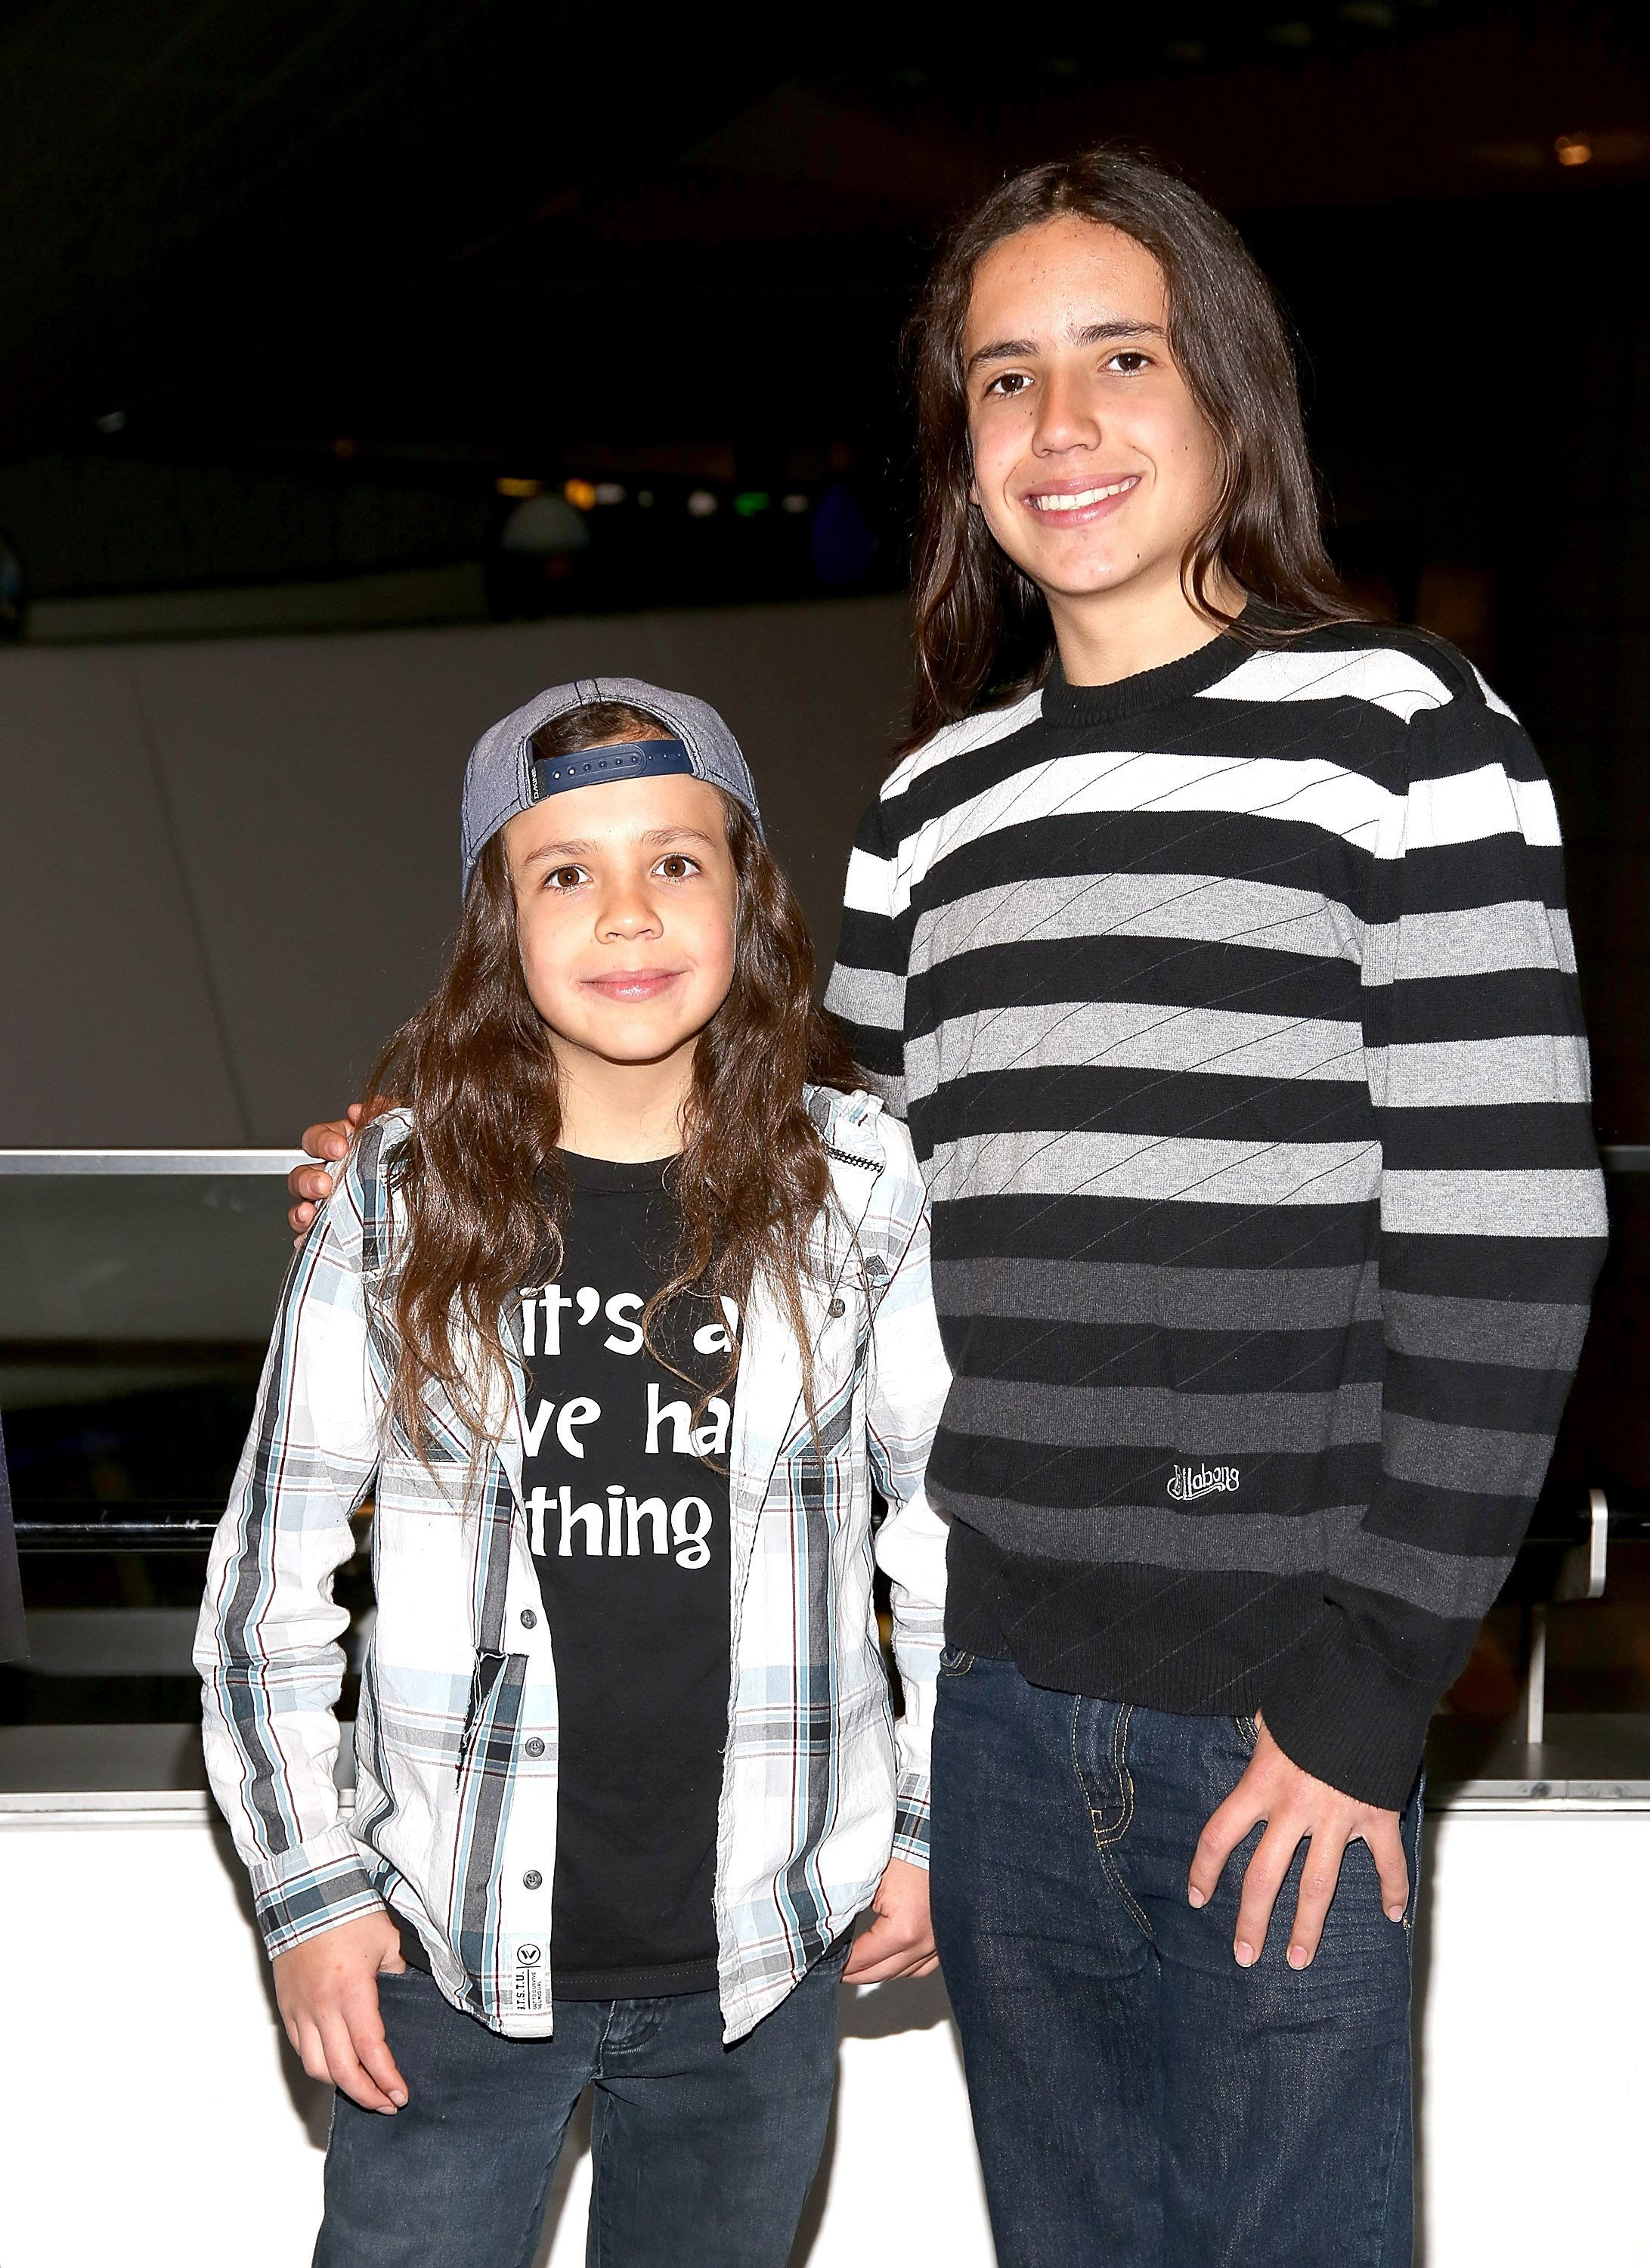 NEW YORK, NY - DECEMBER 04:  Xiuhtezcatl Martinez (L) and Itzcuahtli Martinez  attend New York City Premiere of HBO Documentary Films and the American Museum of Natural History's family special 'Saving My Tomorrow' at American Museum of Natural History on December 4, 2014 in New York City.  (Photo by Paul Zimmerman/WireImage)